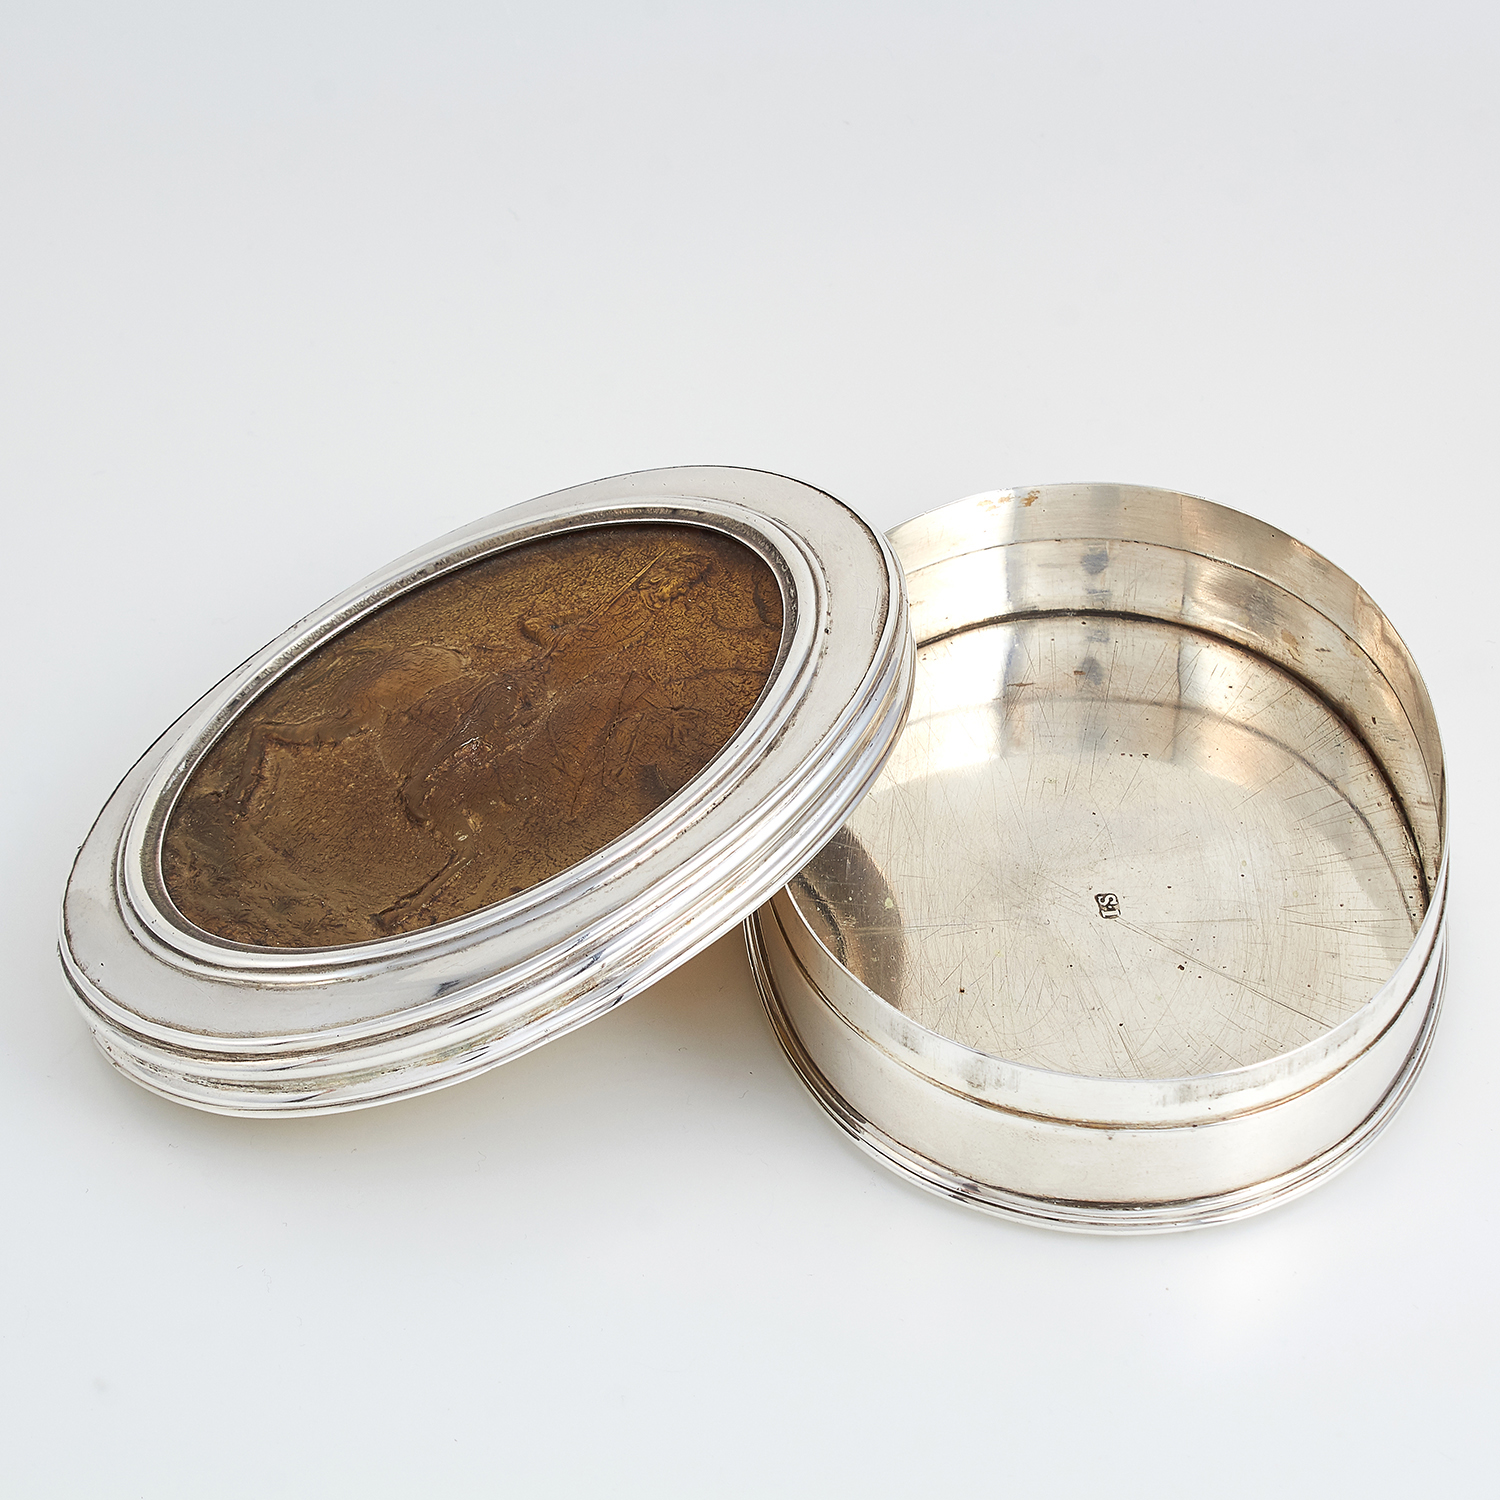 ANTIQUE SCOTTISH SILVER AND PRESSED HORN TOBACCO BOX, MAKER'S MARK I.S, CIRCA 1800 of oval form, the - Image 2 of 3